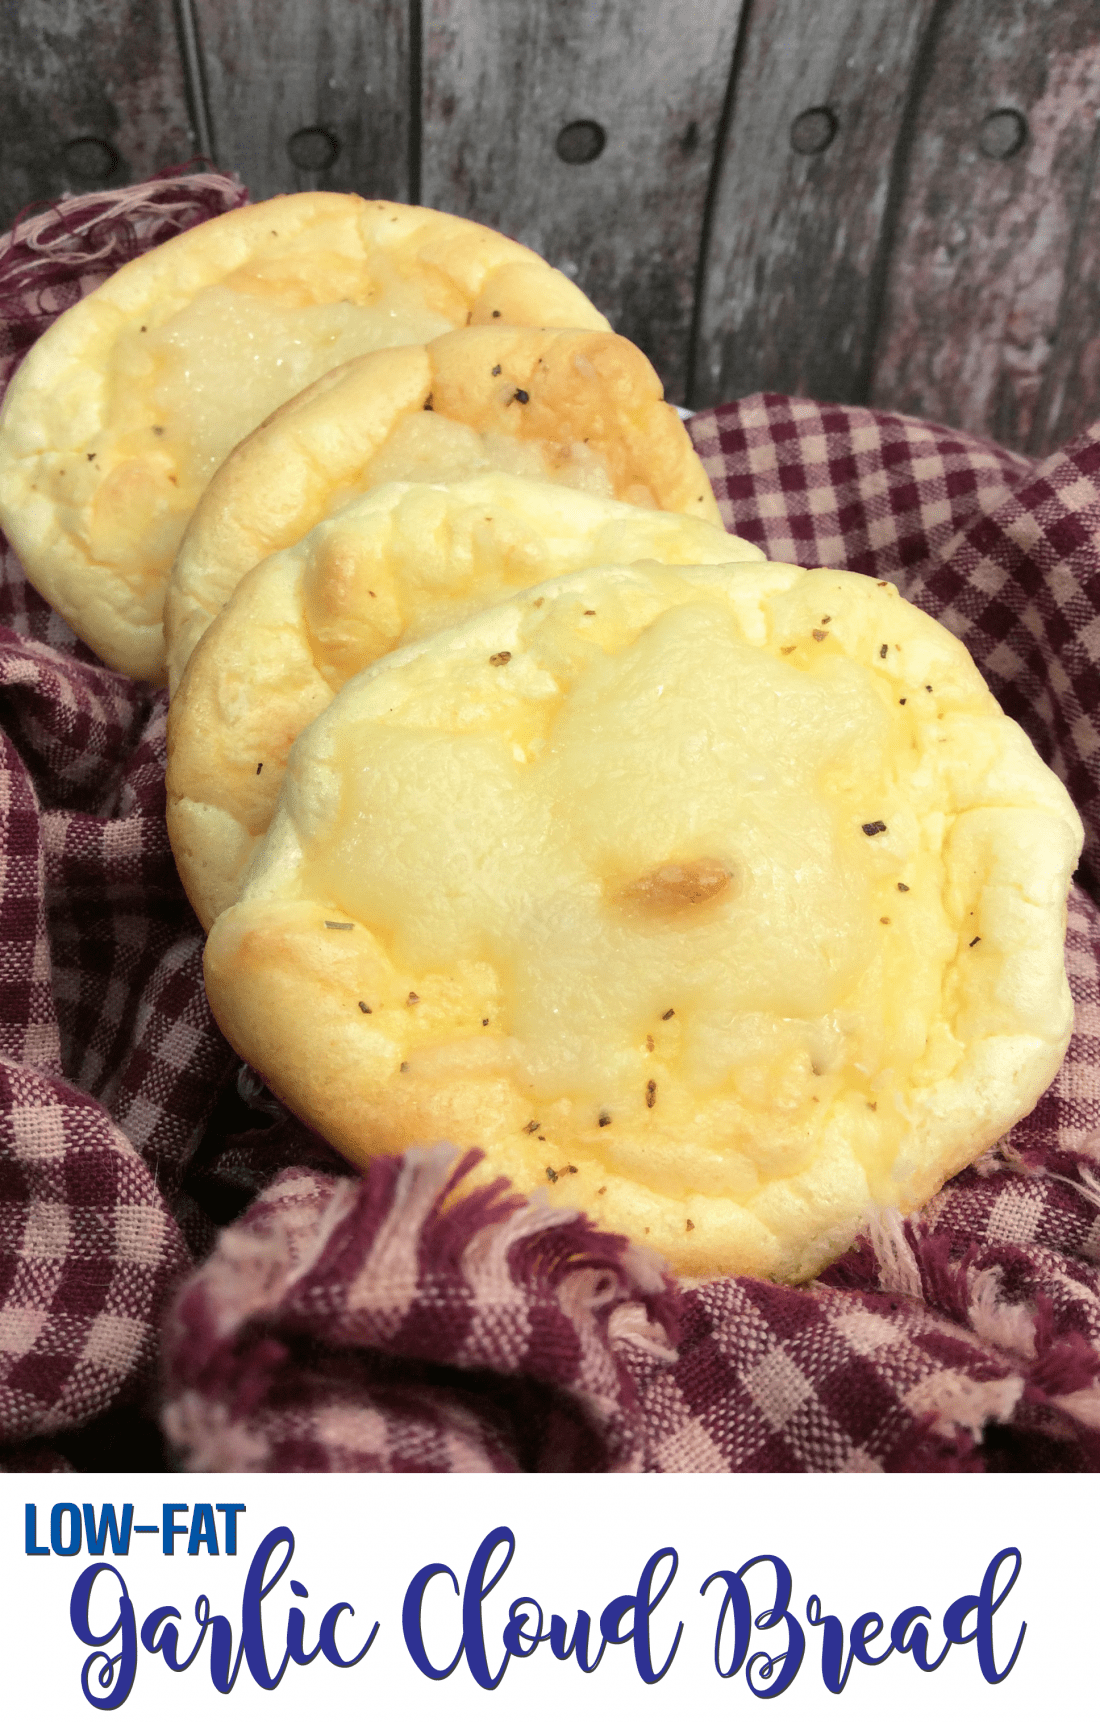 Recipe: Garlic Cloud Bread – Low-fat, No-carb, Gluten-free!